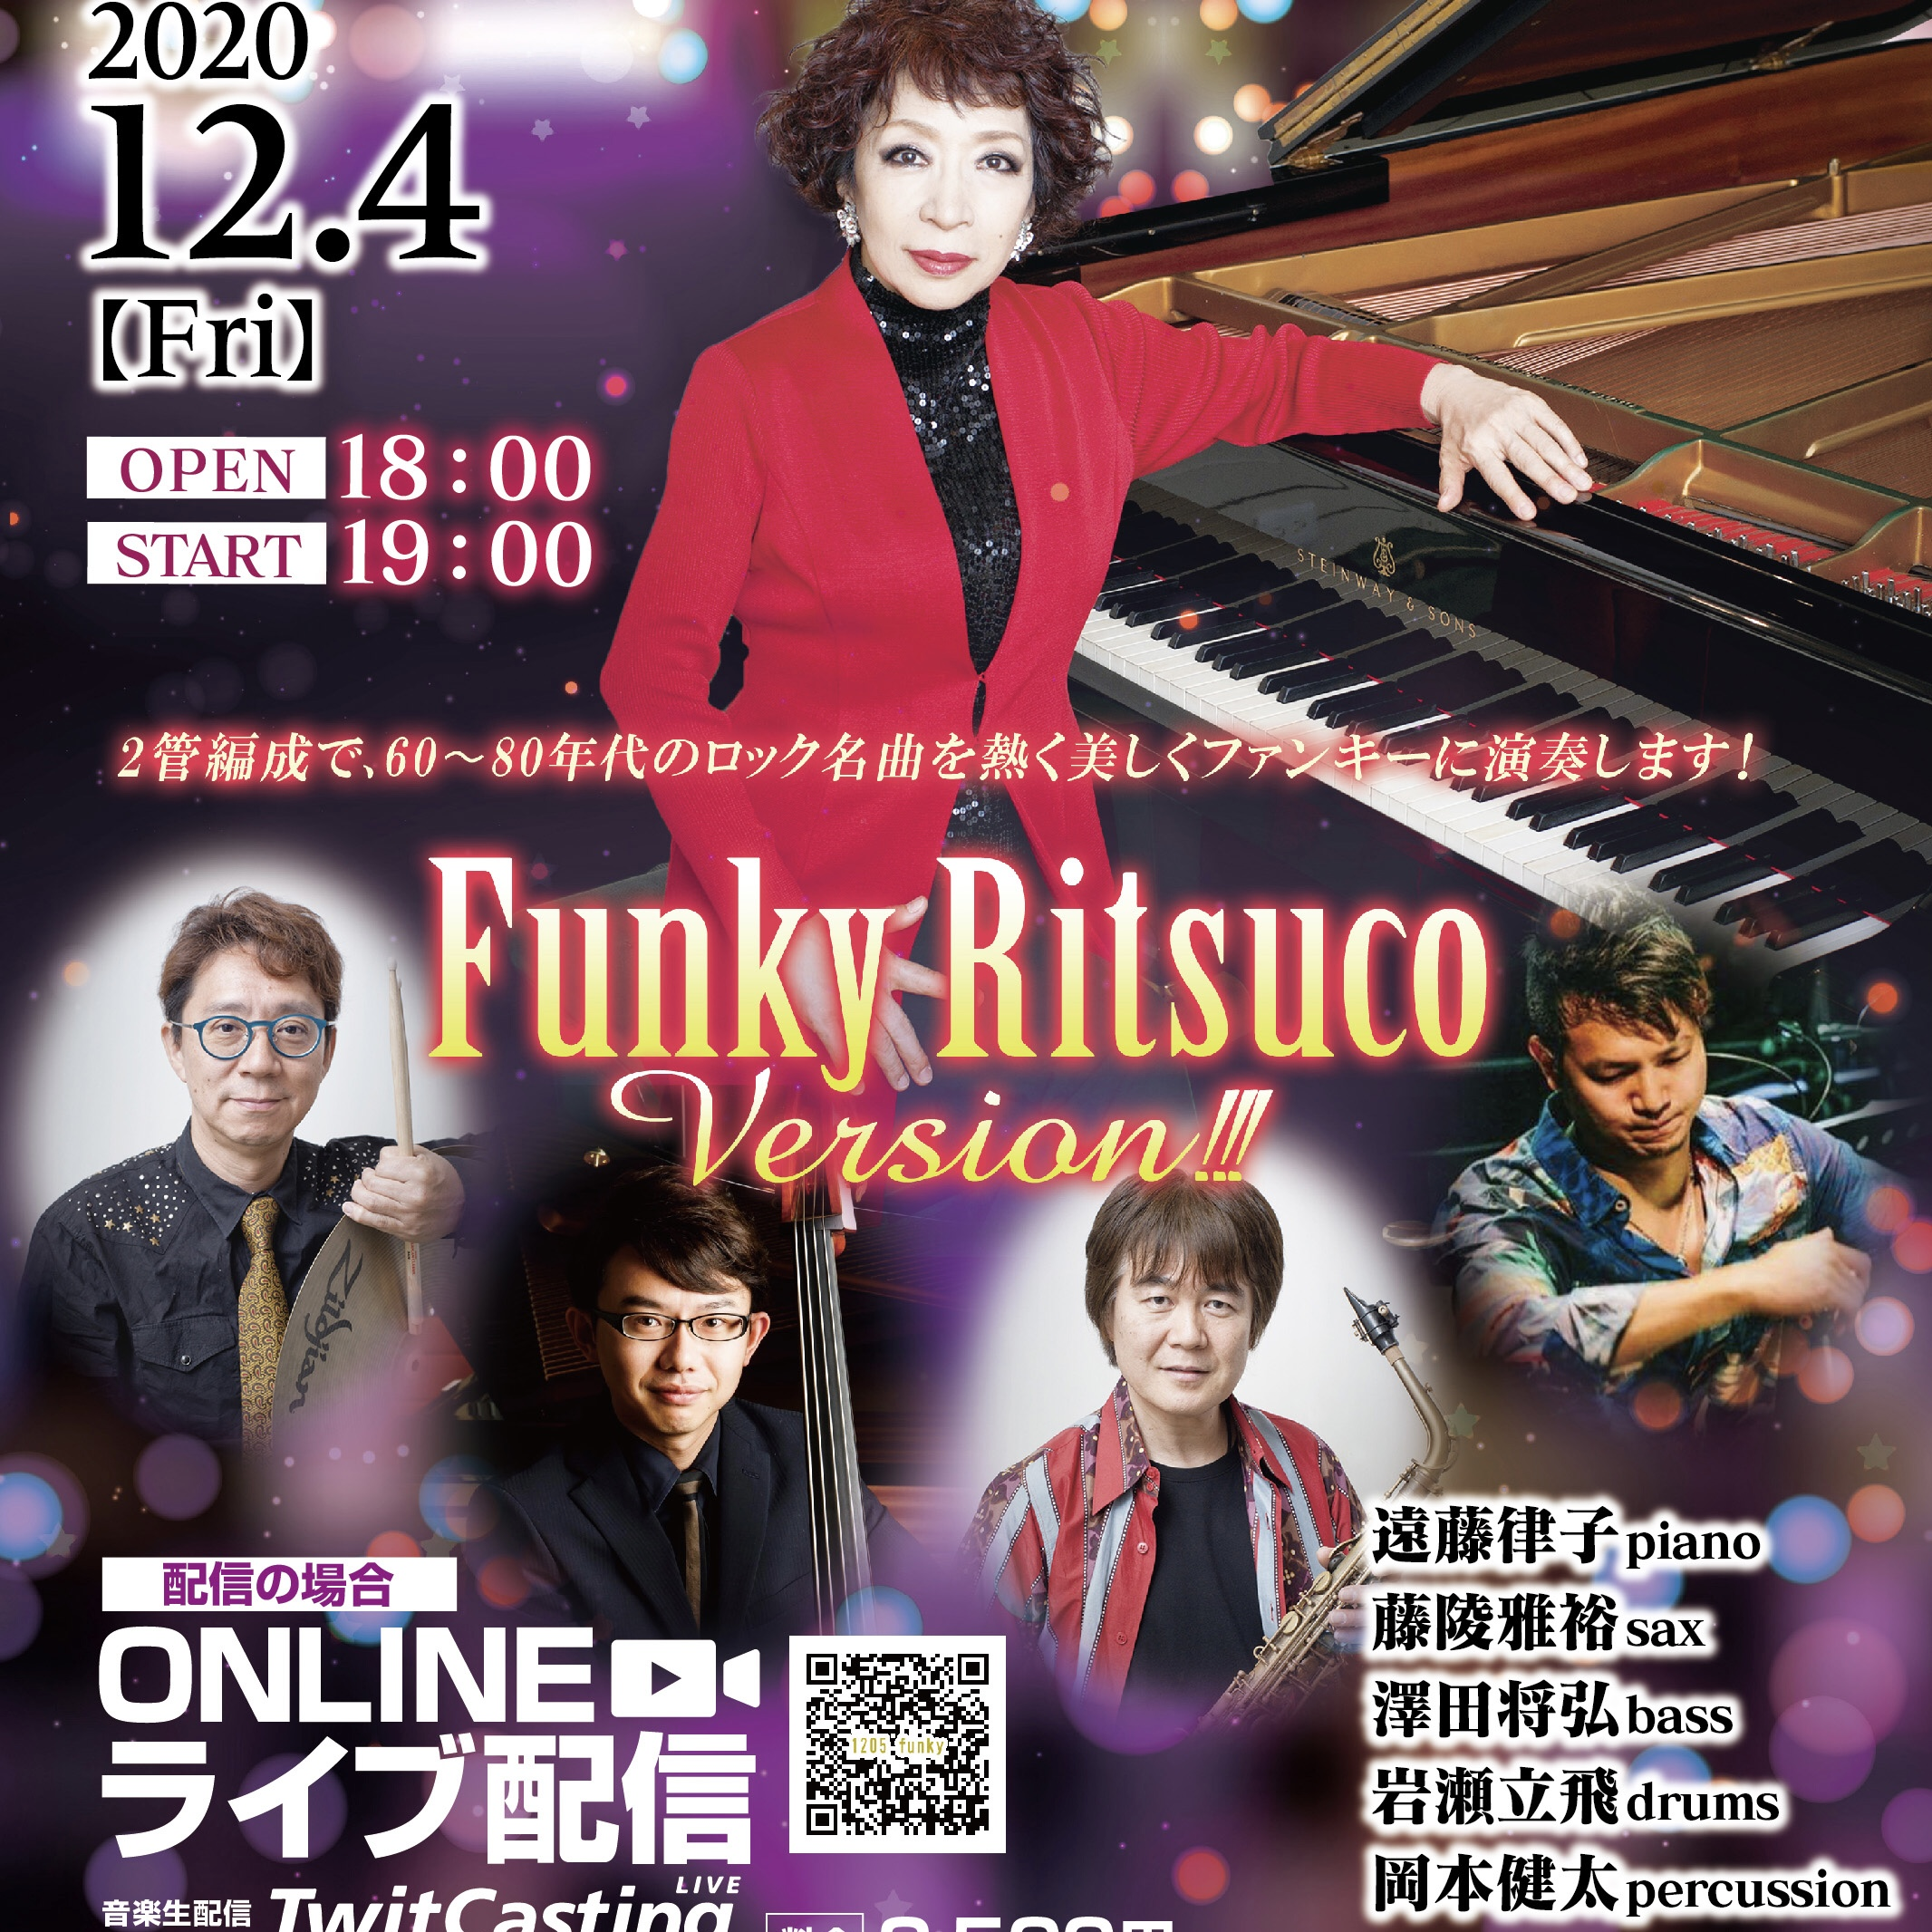 Funky Ritsuco Version!!